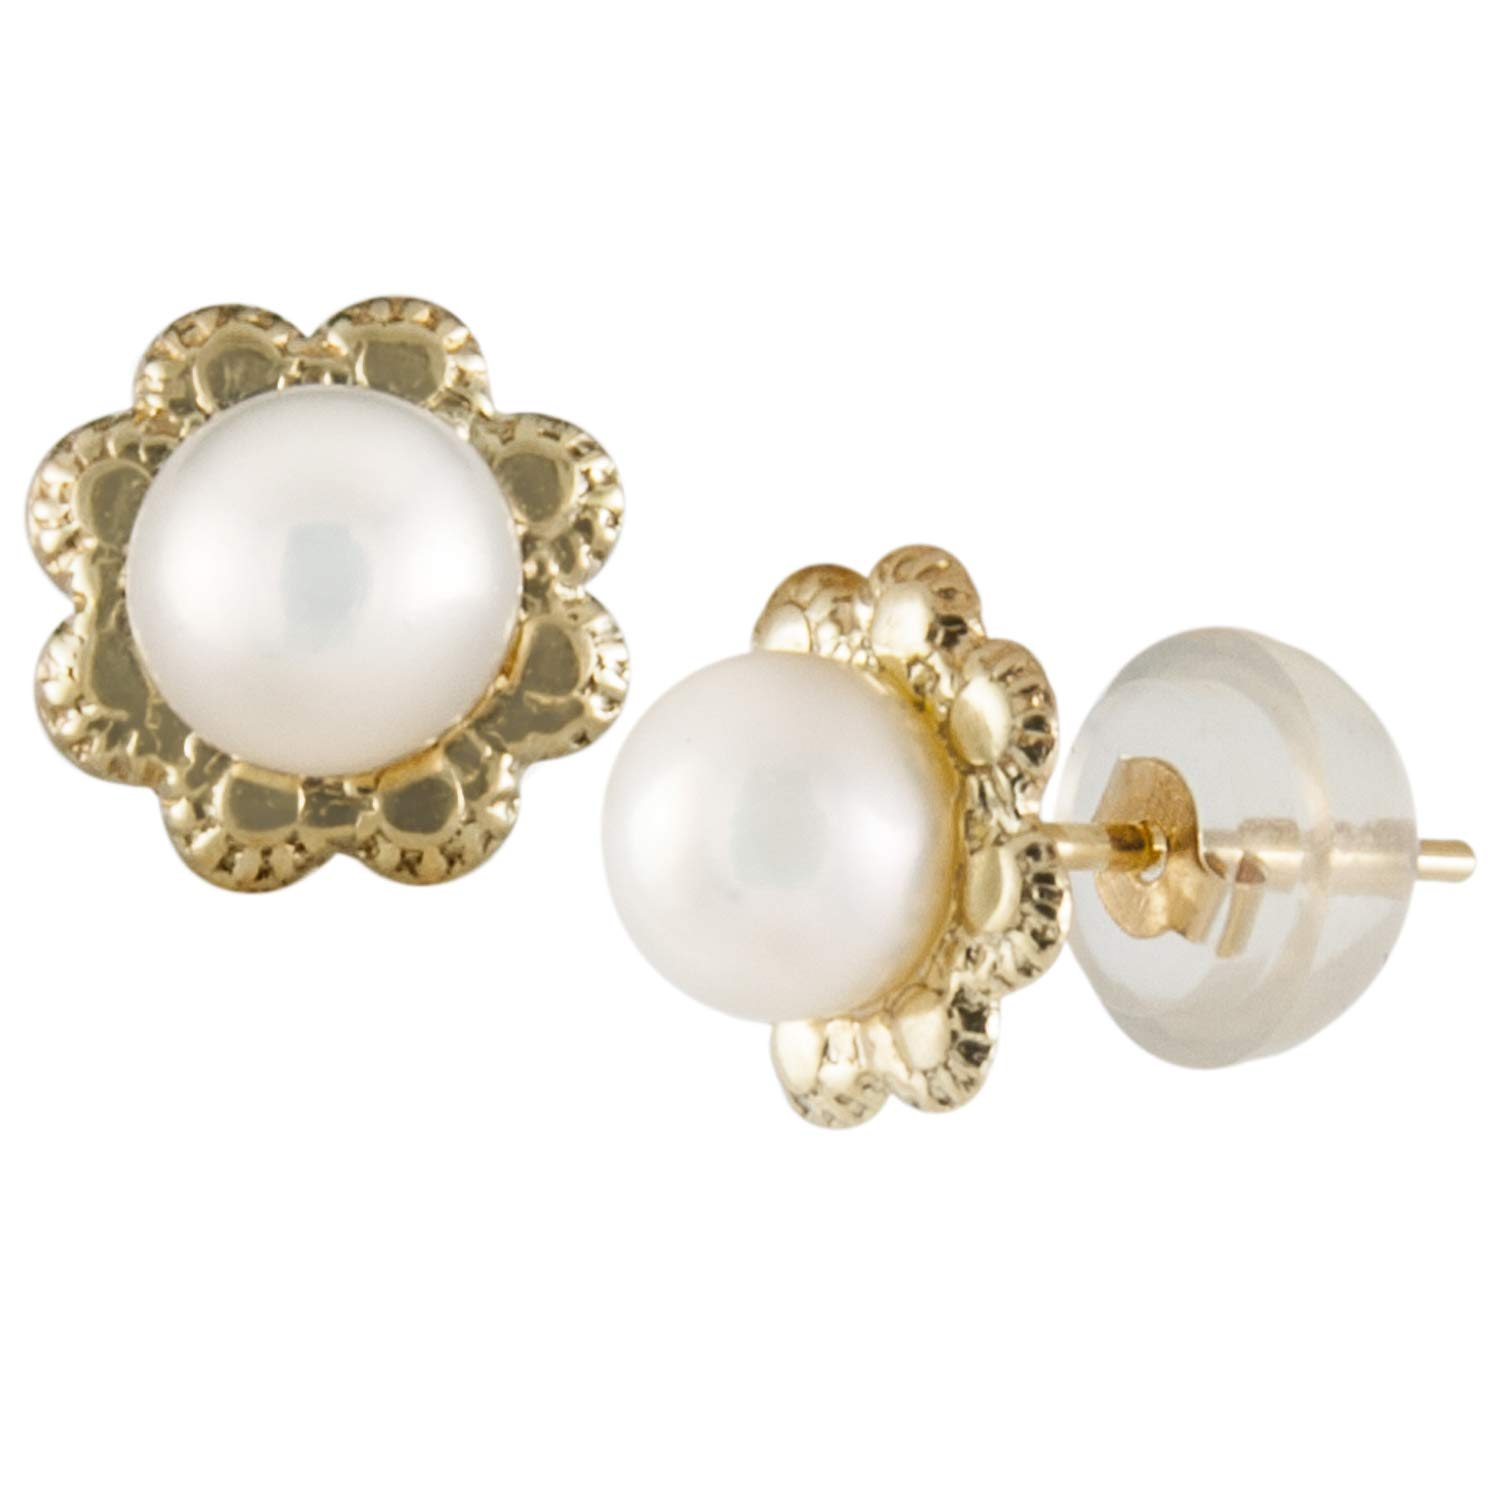 14k Yellow Gold earrings with White 4-4.5mm Freshwater Pearls and 14K Yellow Gold Butterly Push Backs in Silicone